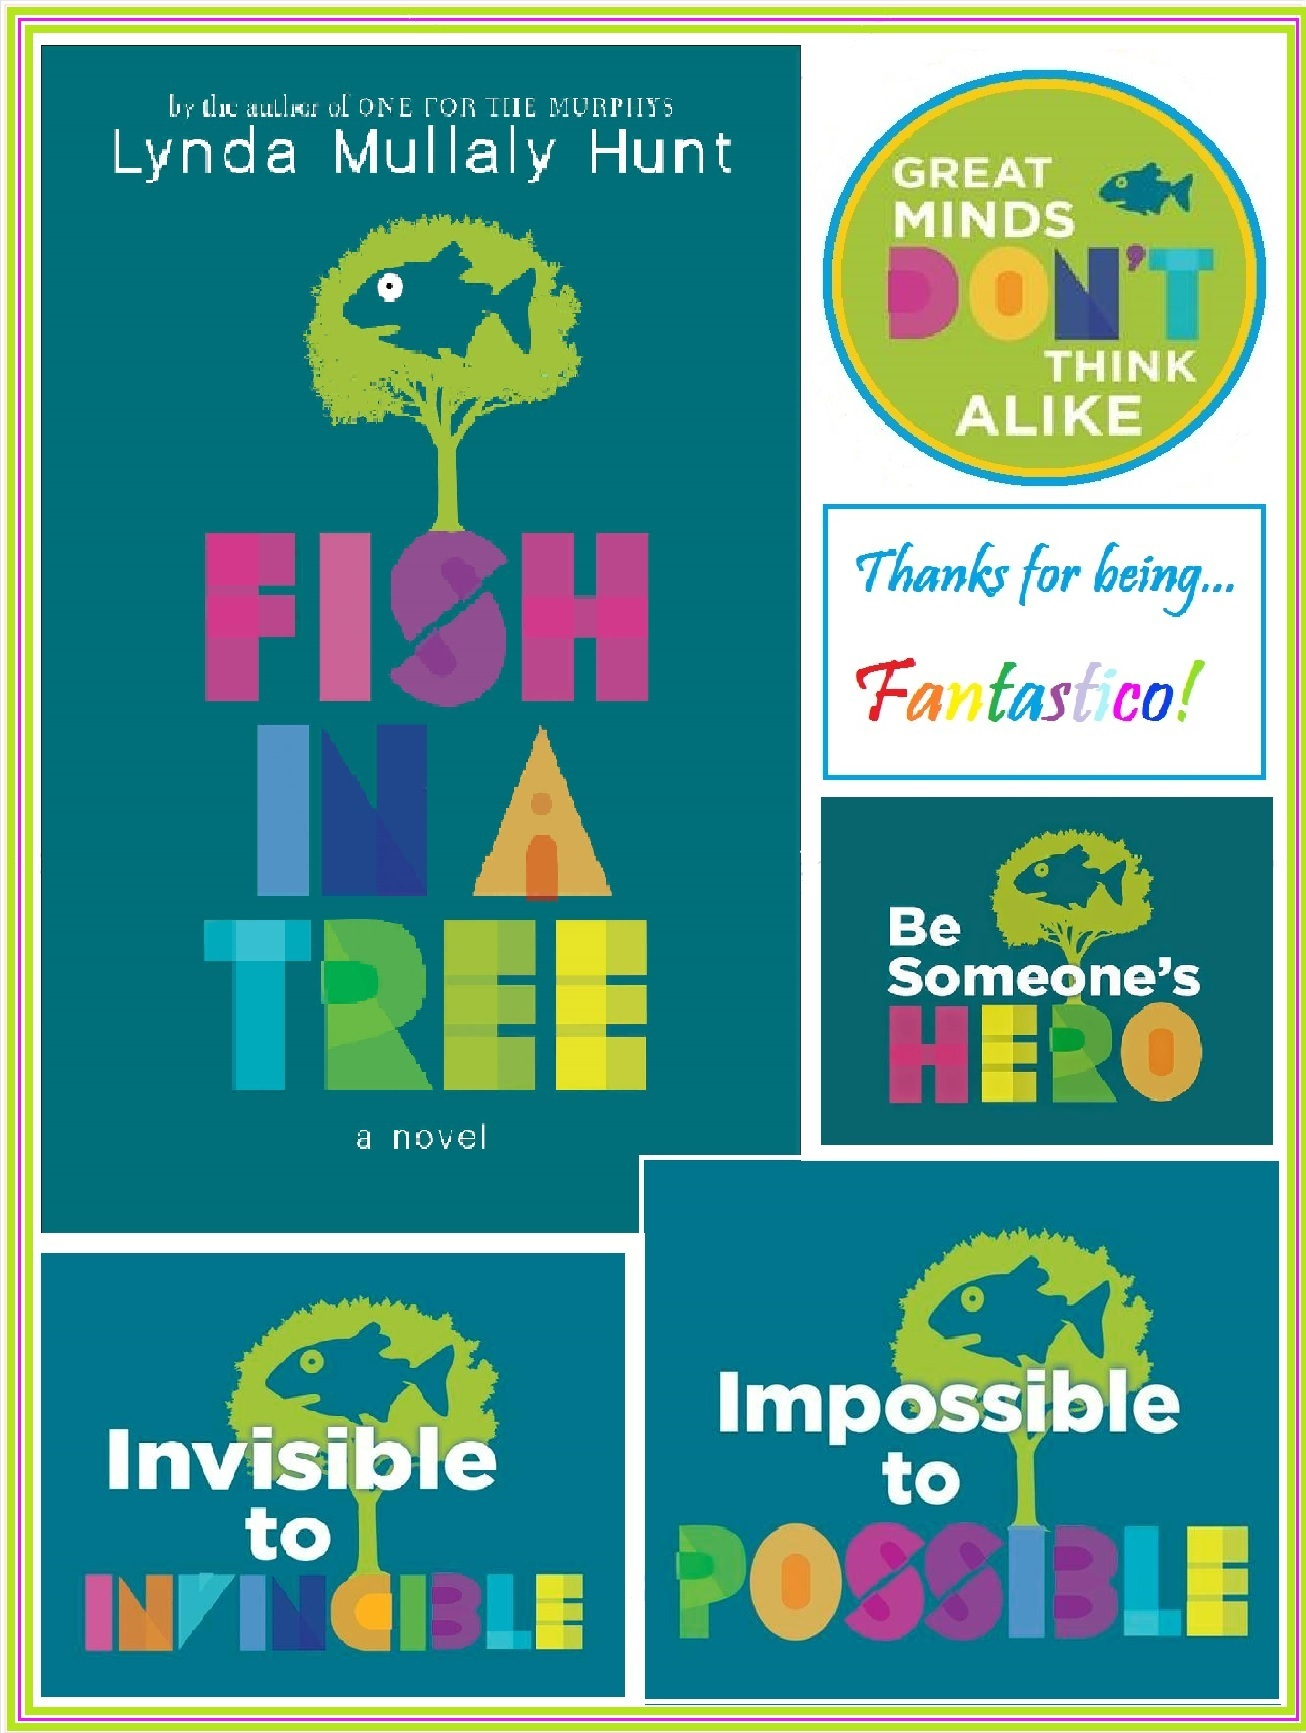 Great minds don t think alike fiat contest celebration for Fish in a tree by lynda mullaly hunt